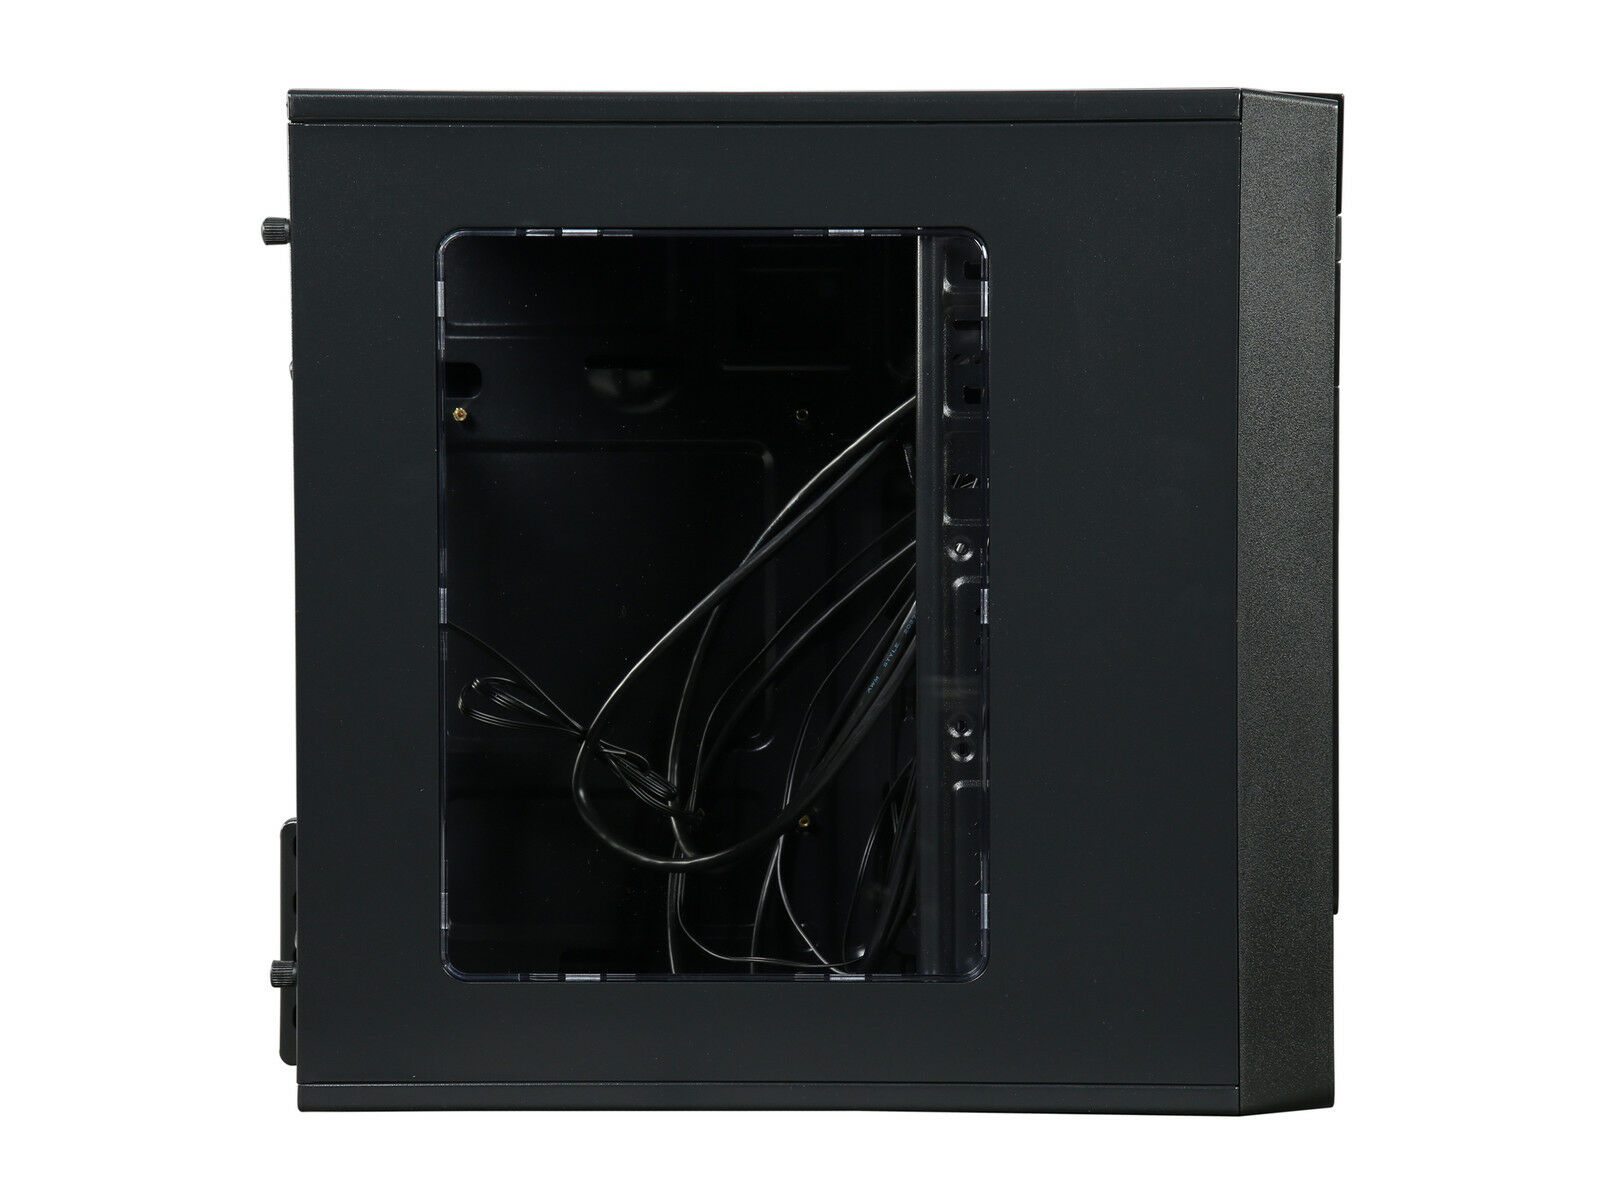 Rosewill Black Computer PC Case, ATX Mini Tower, Side Window and Two Fans FBM-X1